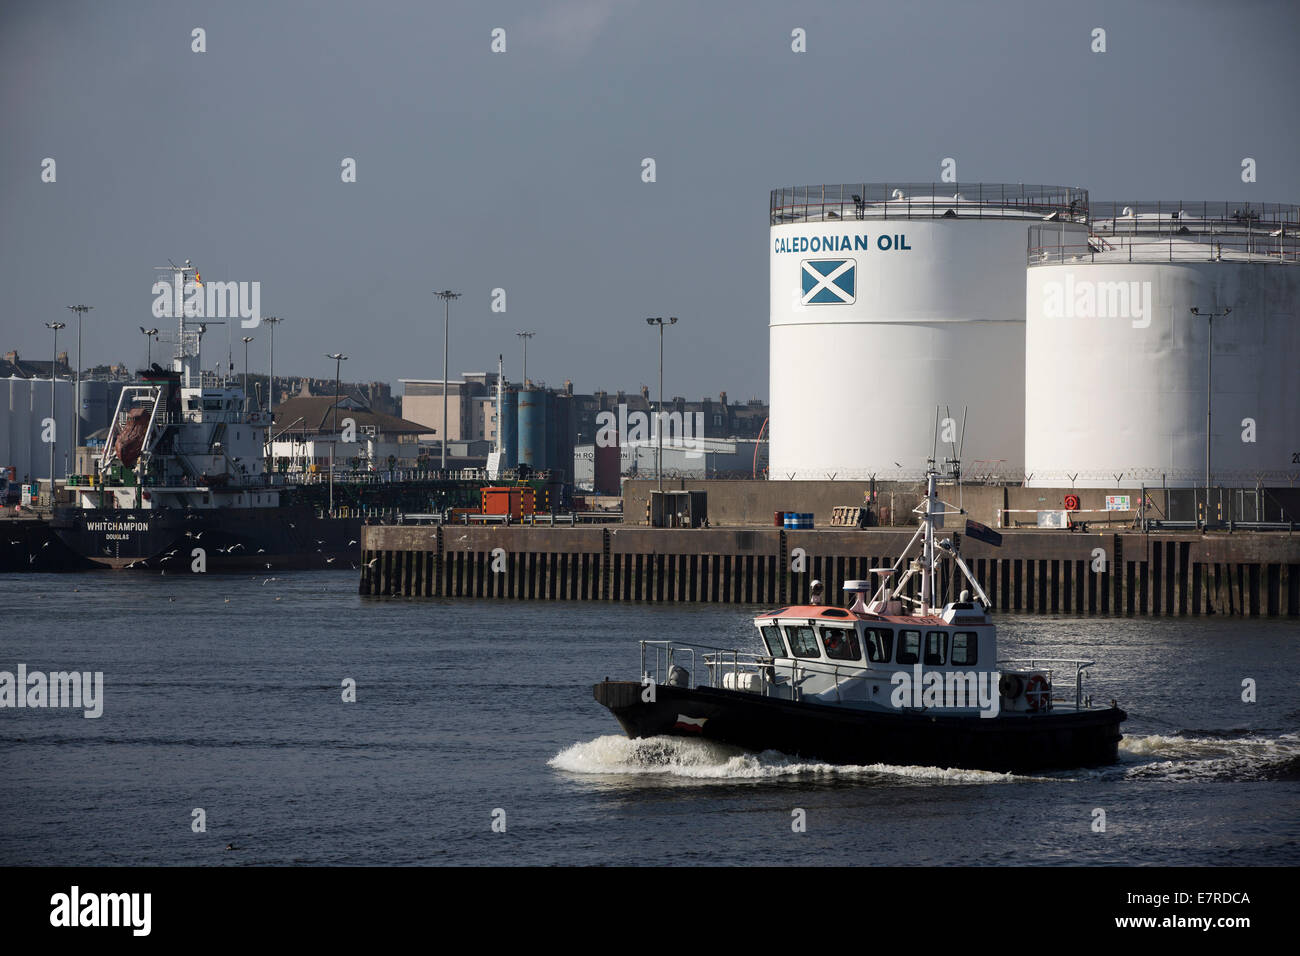 A tug boat crosses the mouth of Aberdeen harbour, the Scotland's North Sea oil and gas transportation and maintenance - Stock Image